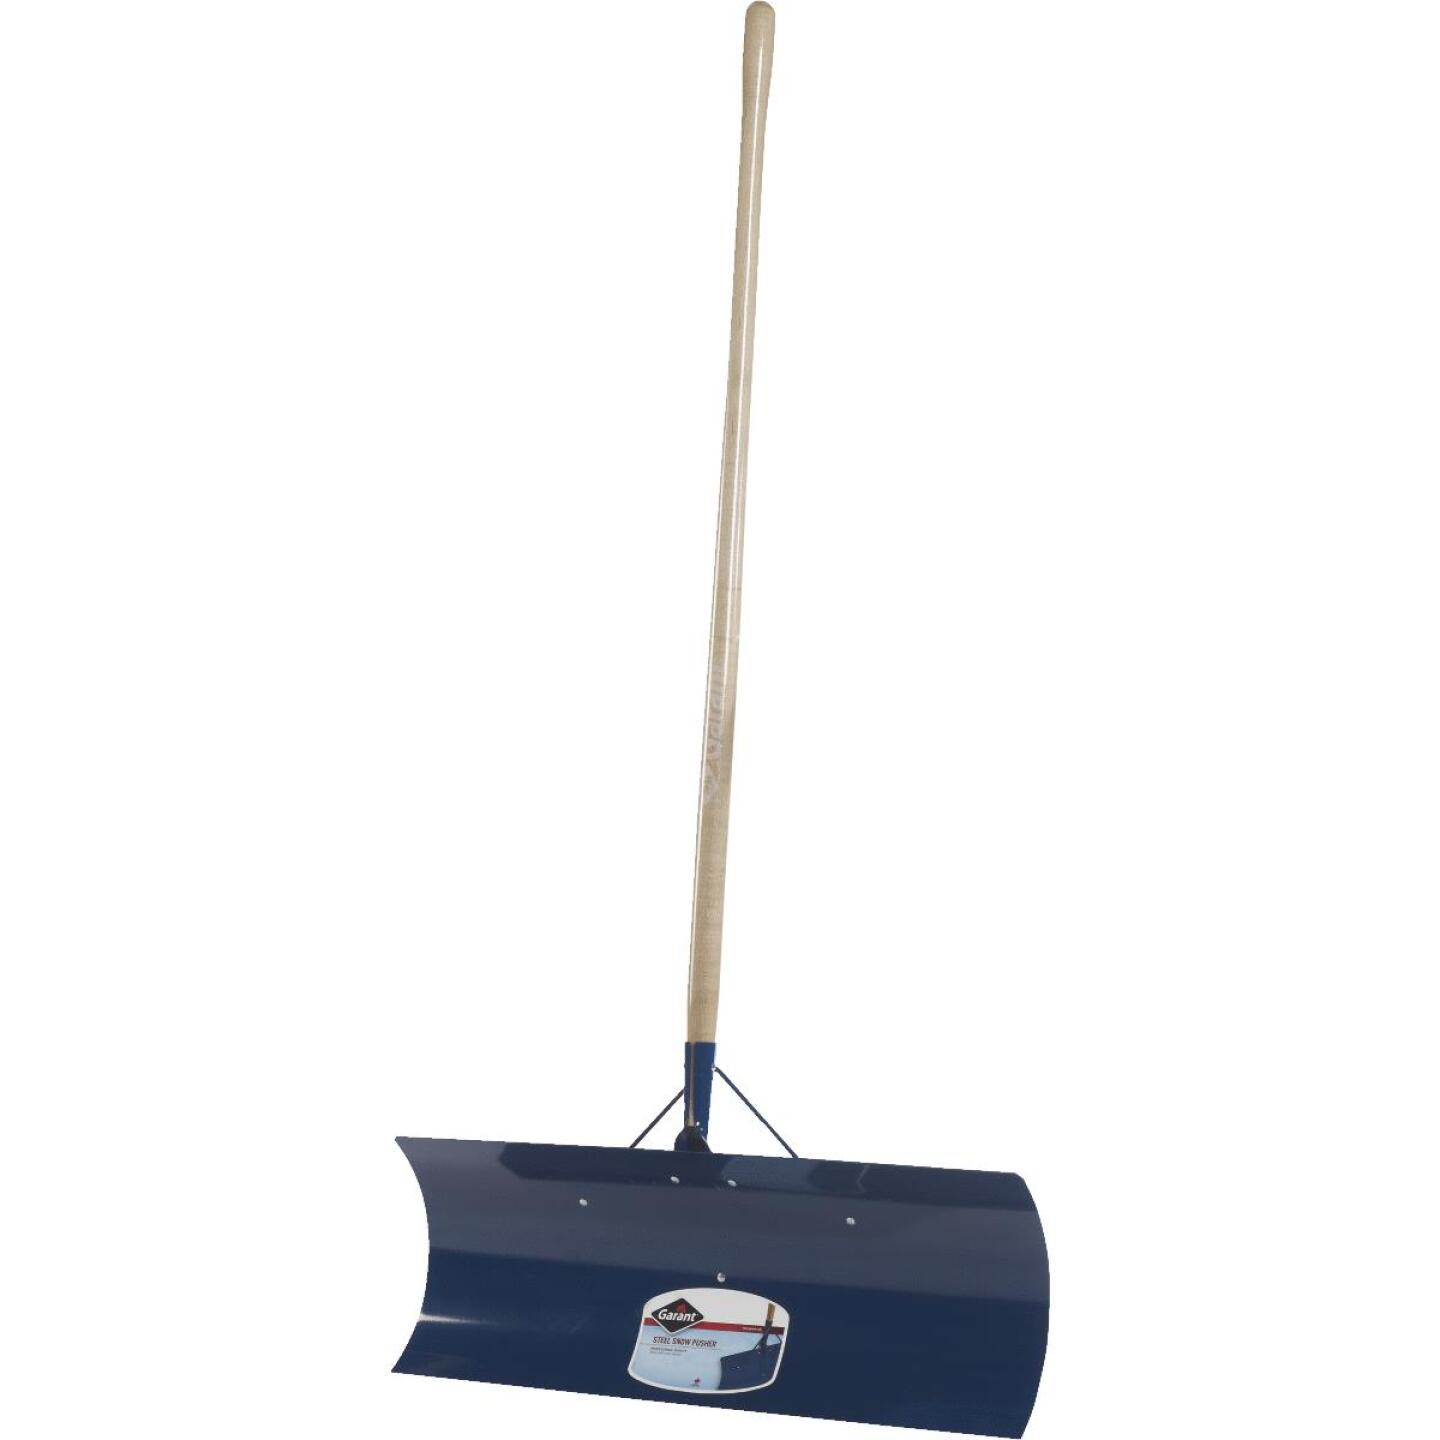 Garant Yukon 30 In. Steel Snow Pusher with 48 In. Wood Handle Image 1